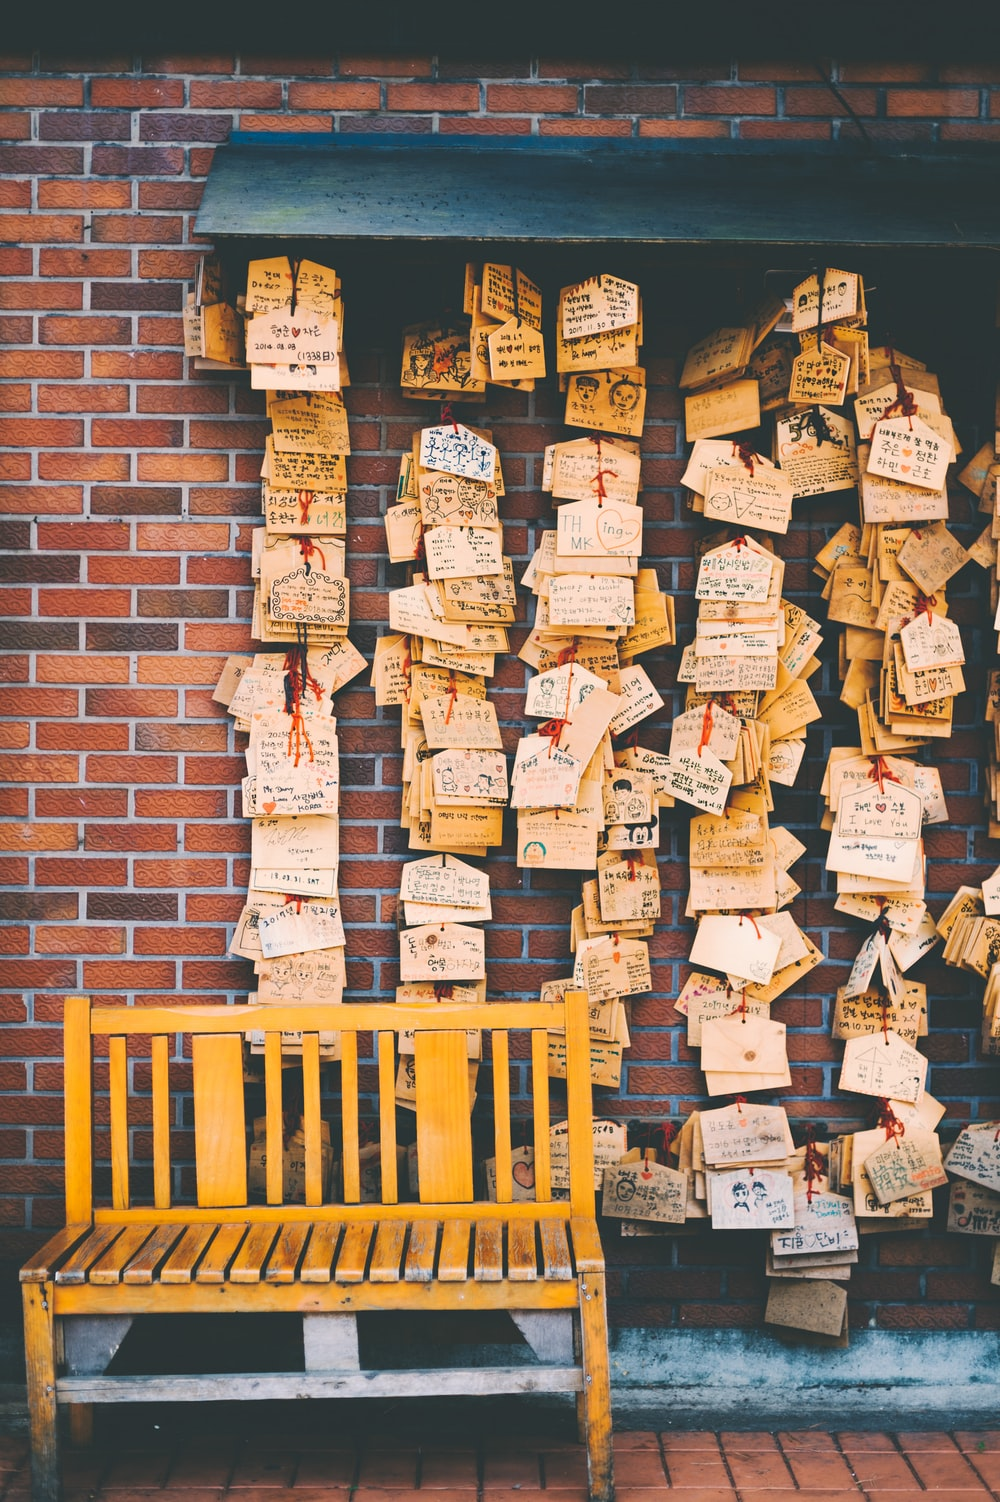 brown wooden bench in front of hanging cards